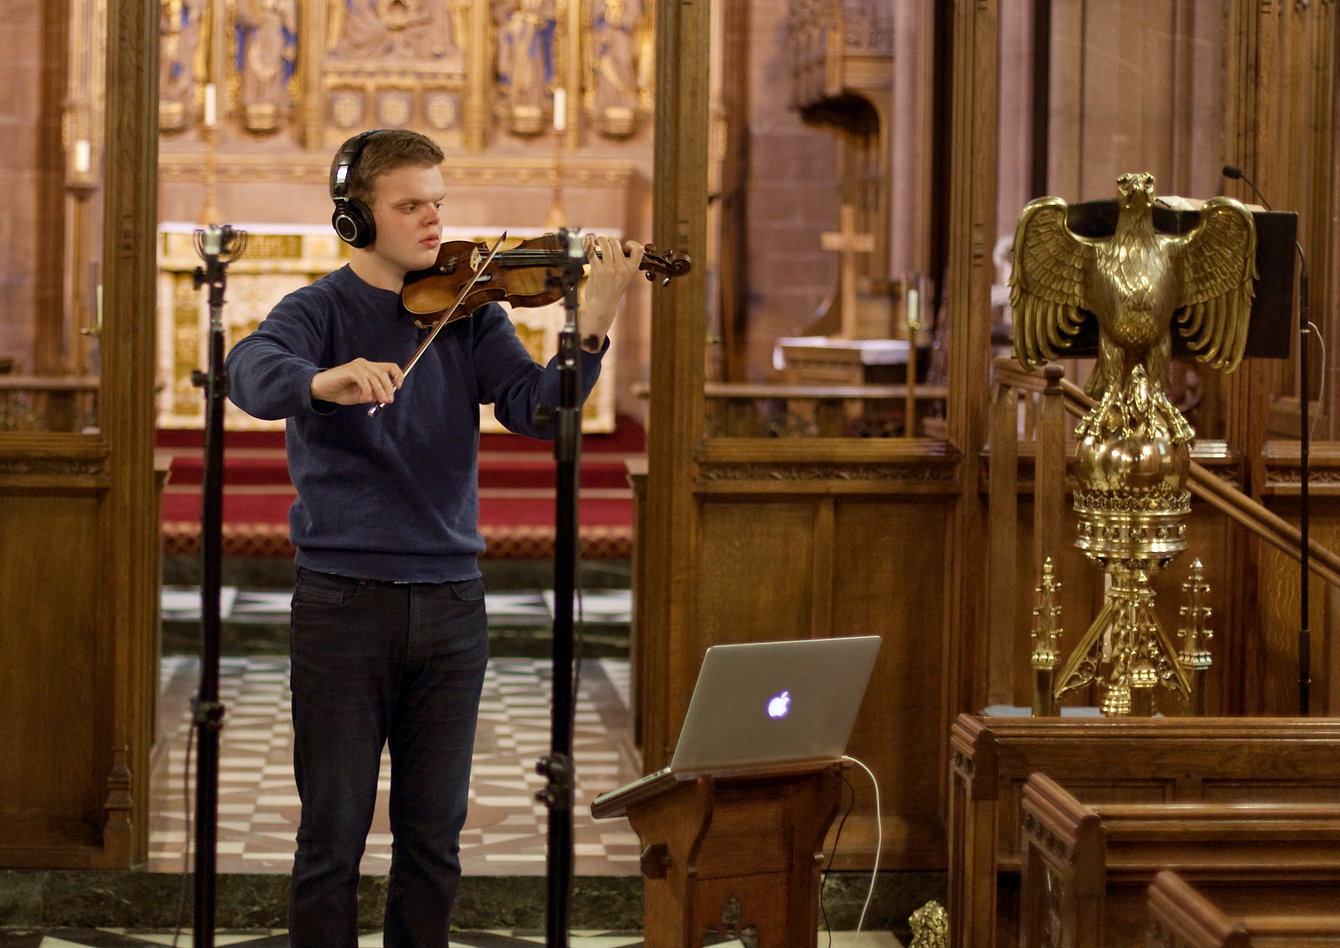 Philip Chidell violinist, church of St Mary, Eccleston, Cheshire